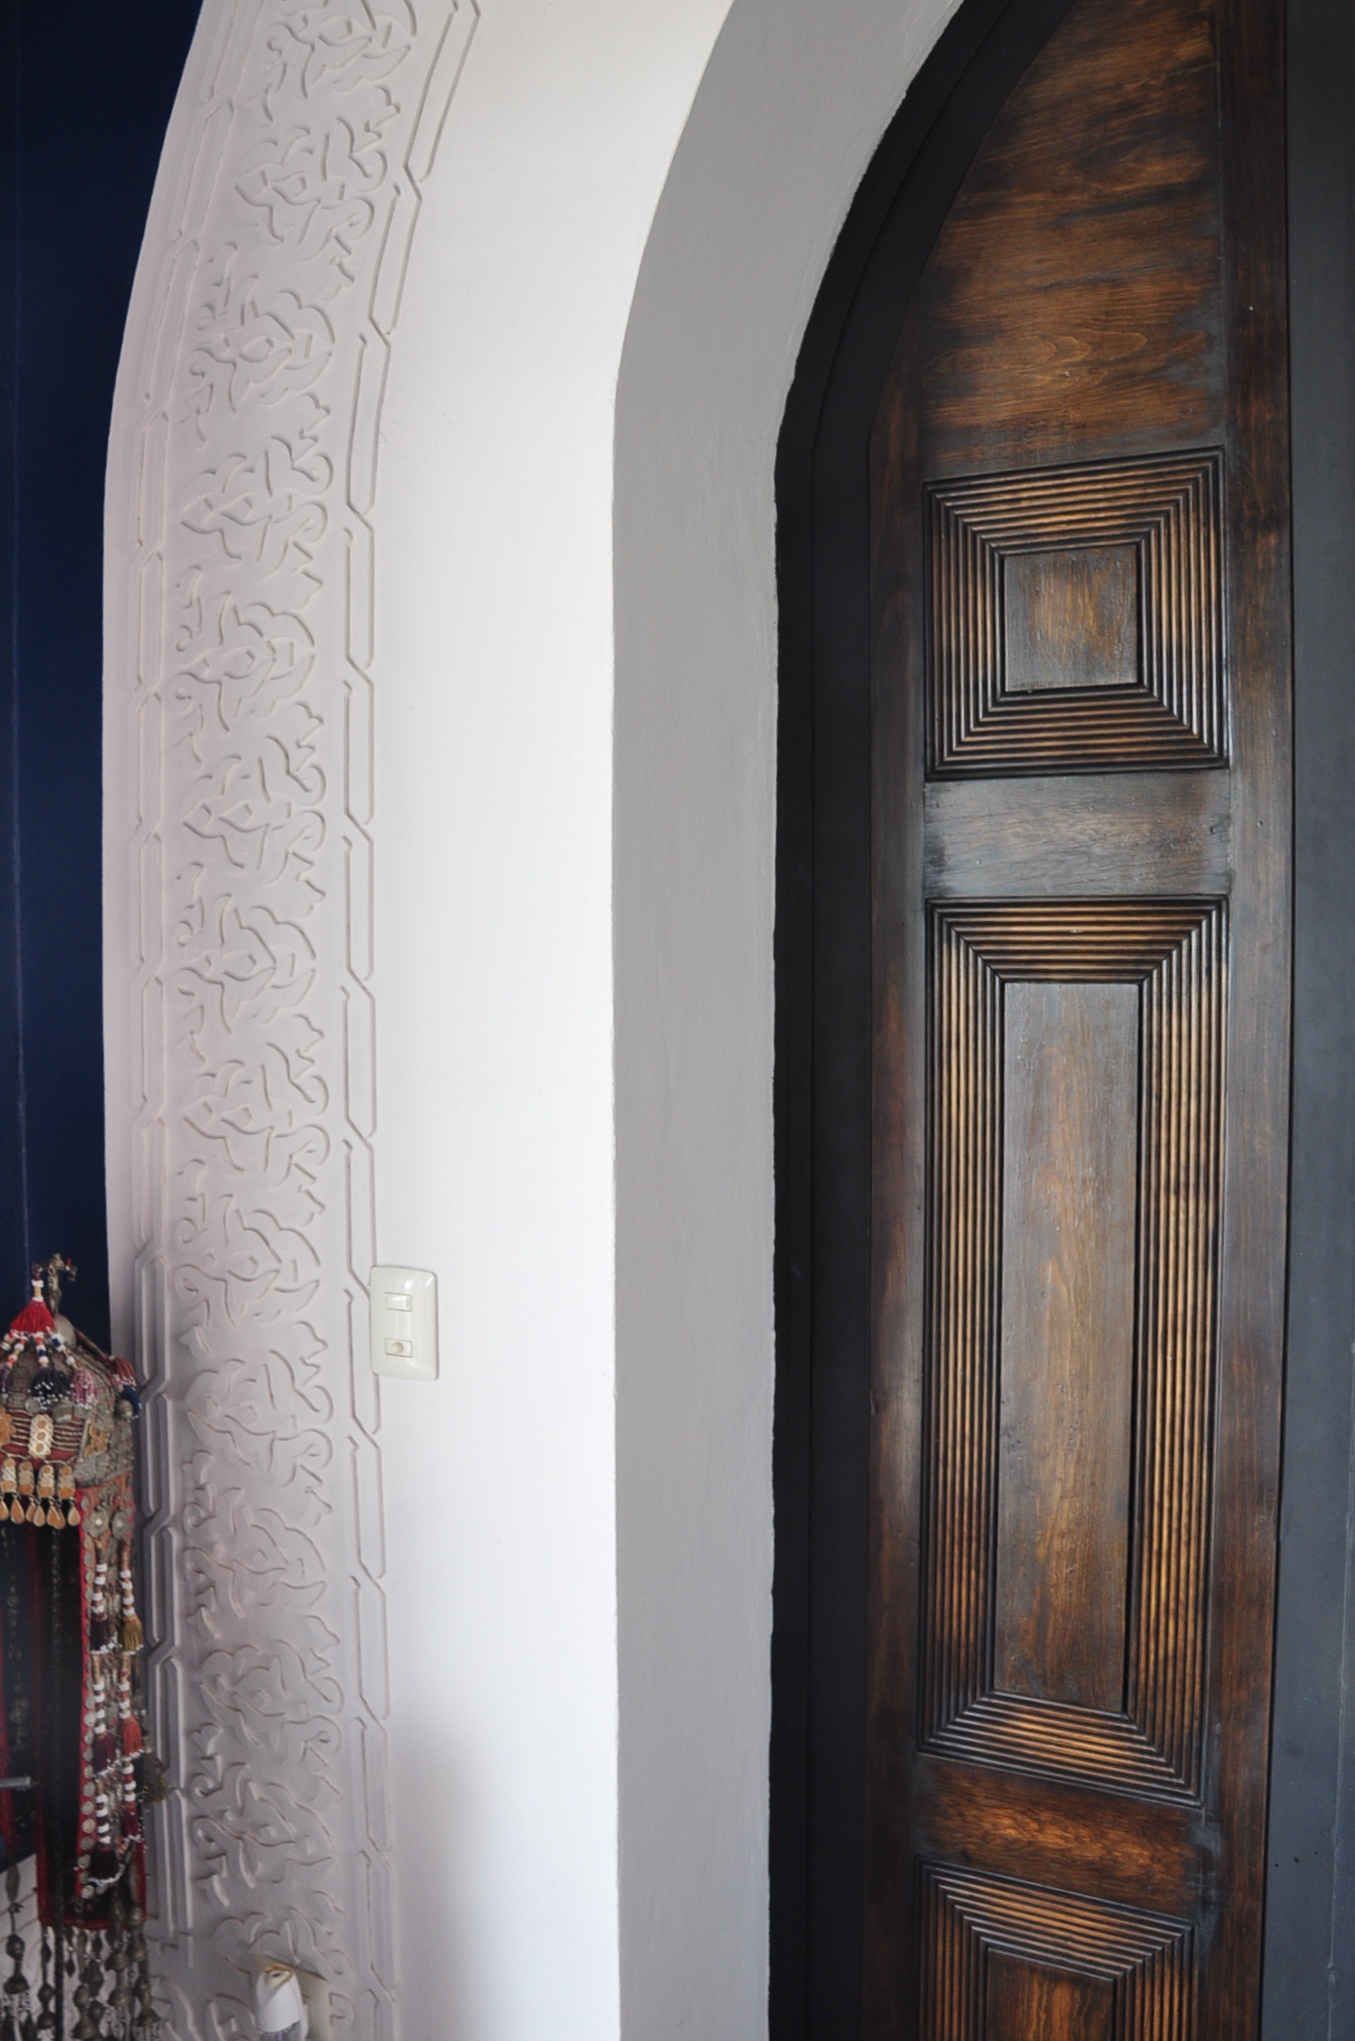 CASA OASIS, LIVING ROOM DOOR & WALL DETAIL